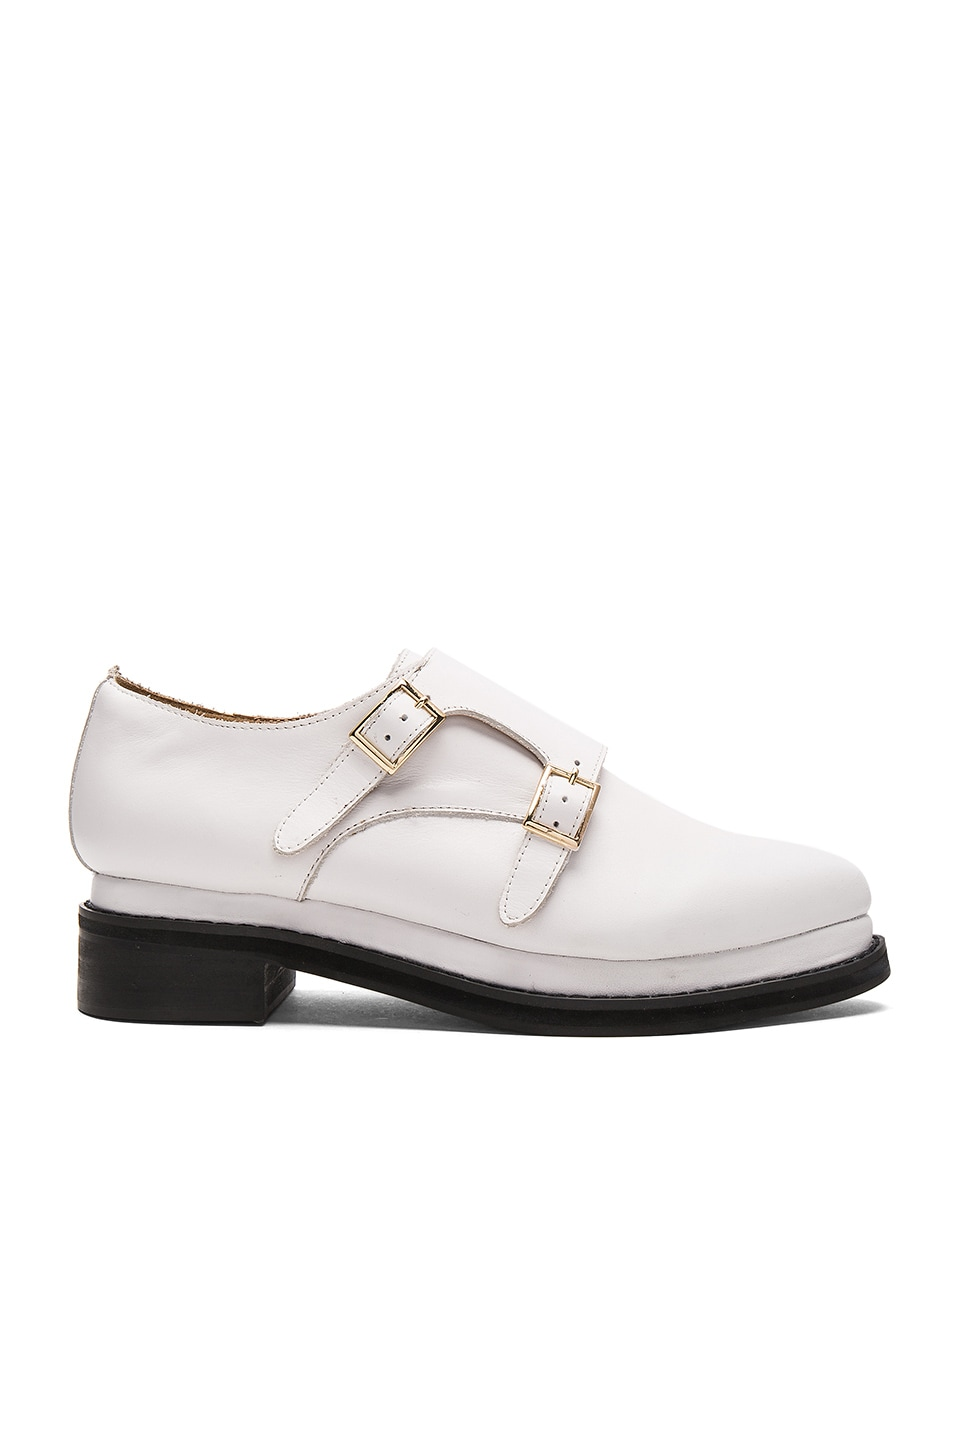 JAGGAR Dualities Flat in White